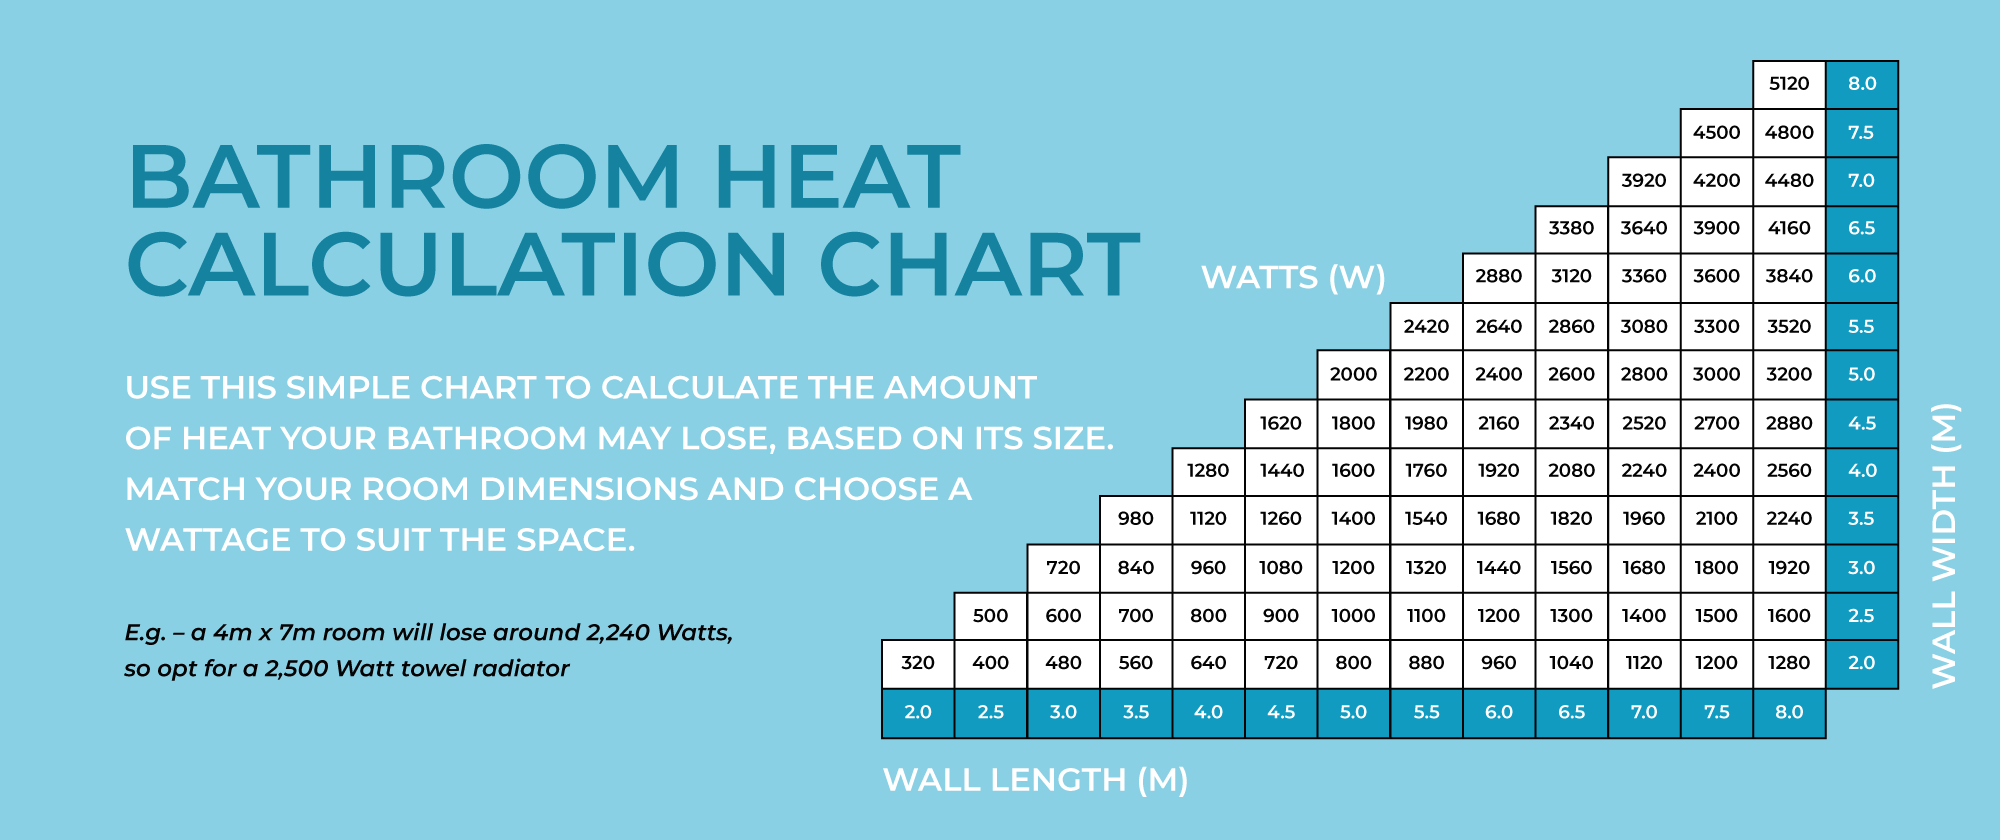 A chart showing heat output calculations for room size